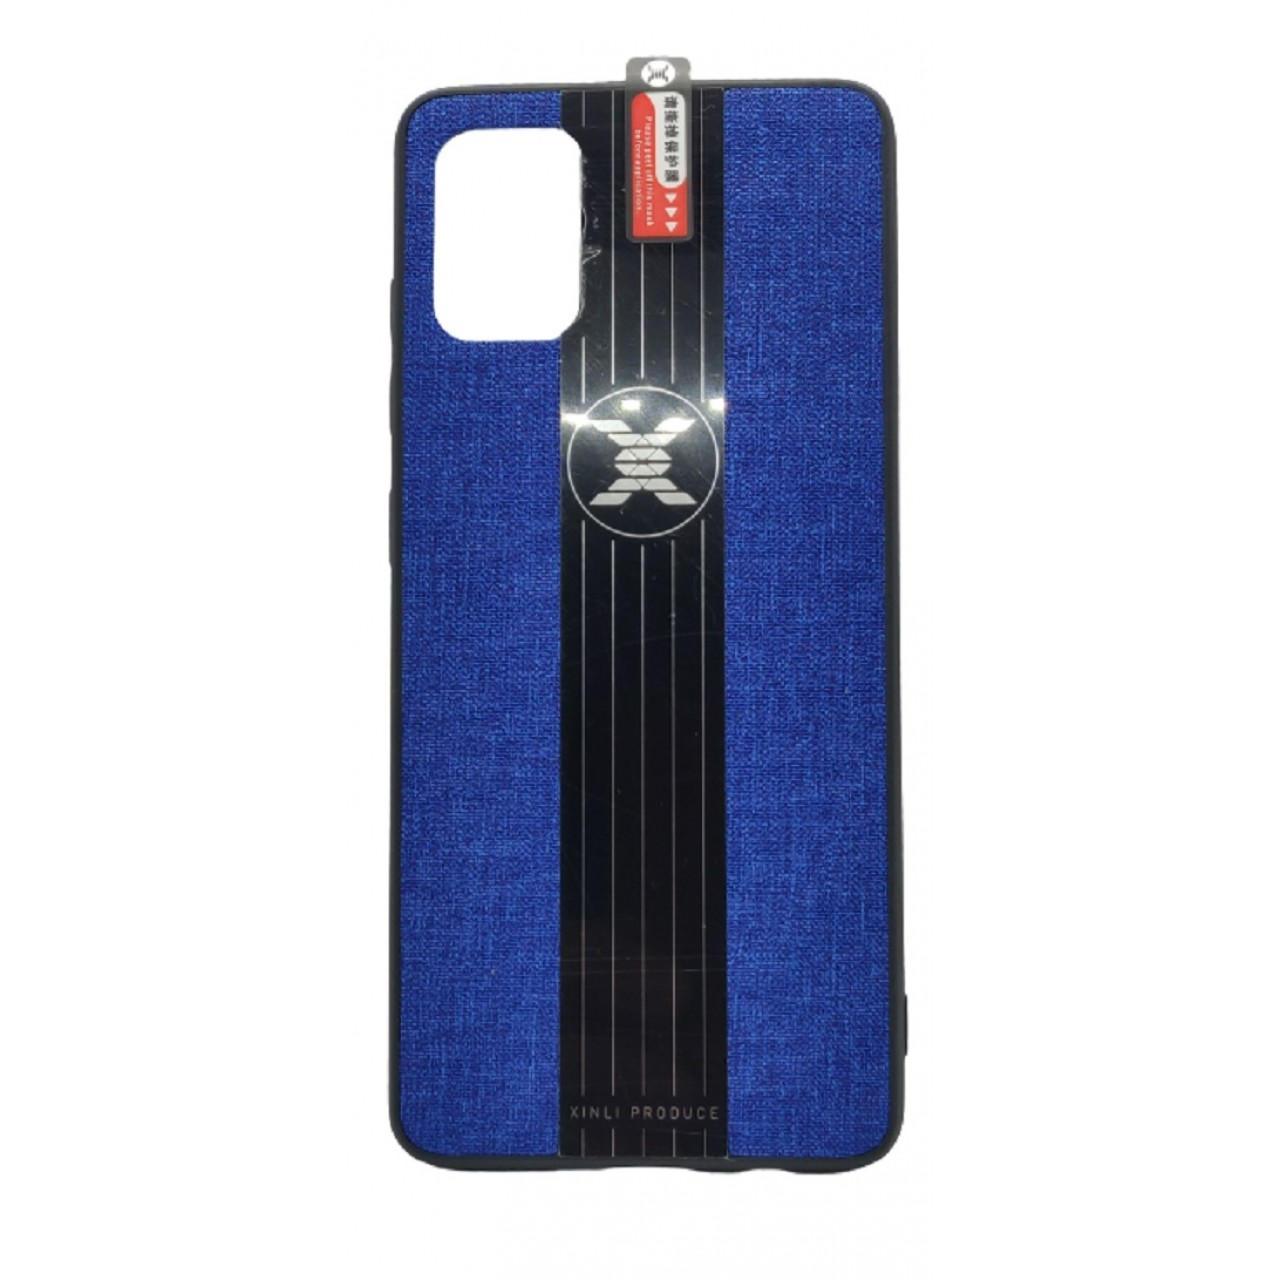 Back Case Cloth Pattern with ring for Samsung A51 Blue - Θήκη προστασίας με δαχτυλίδι στην πλάτη Μπλε - OEM